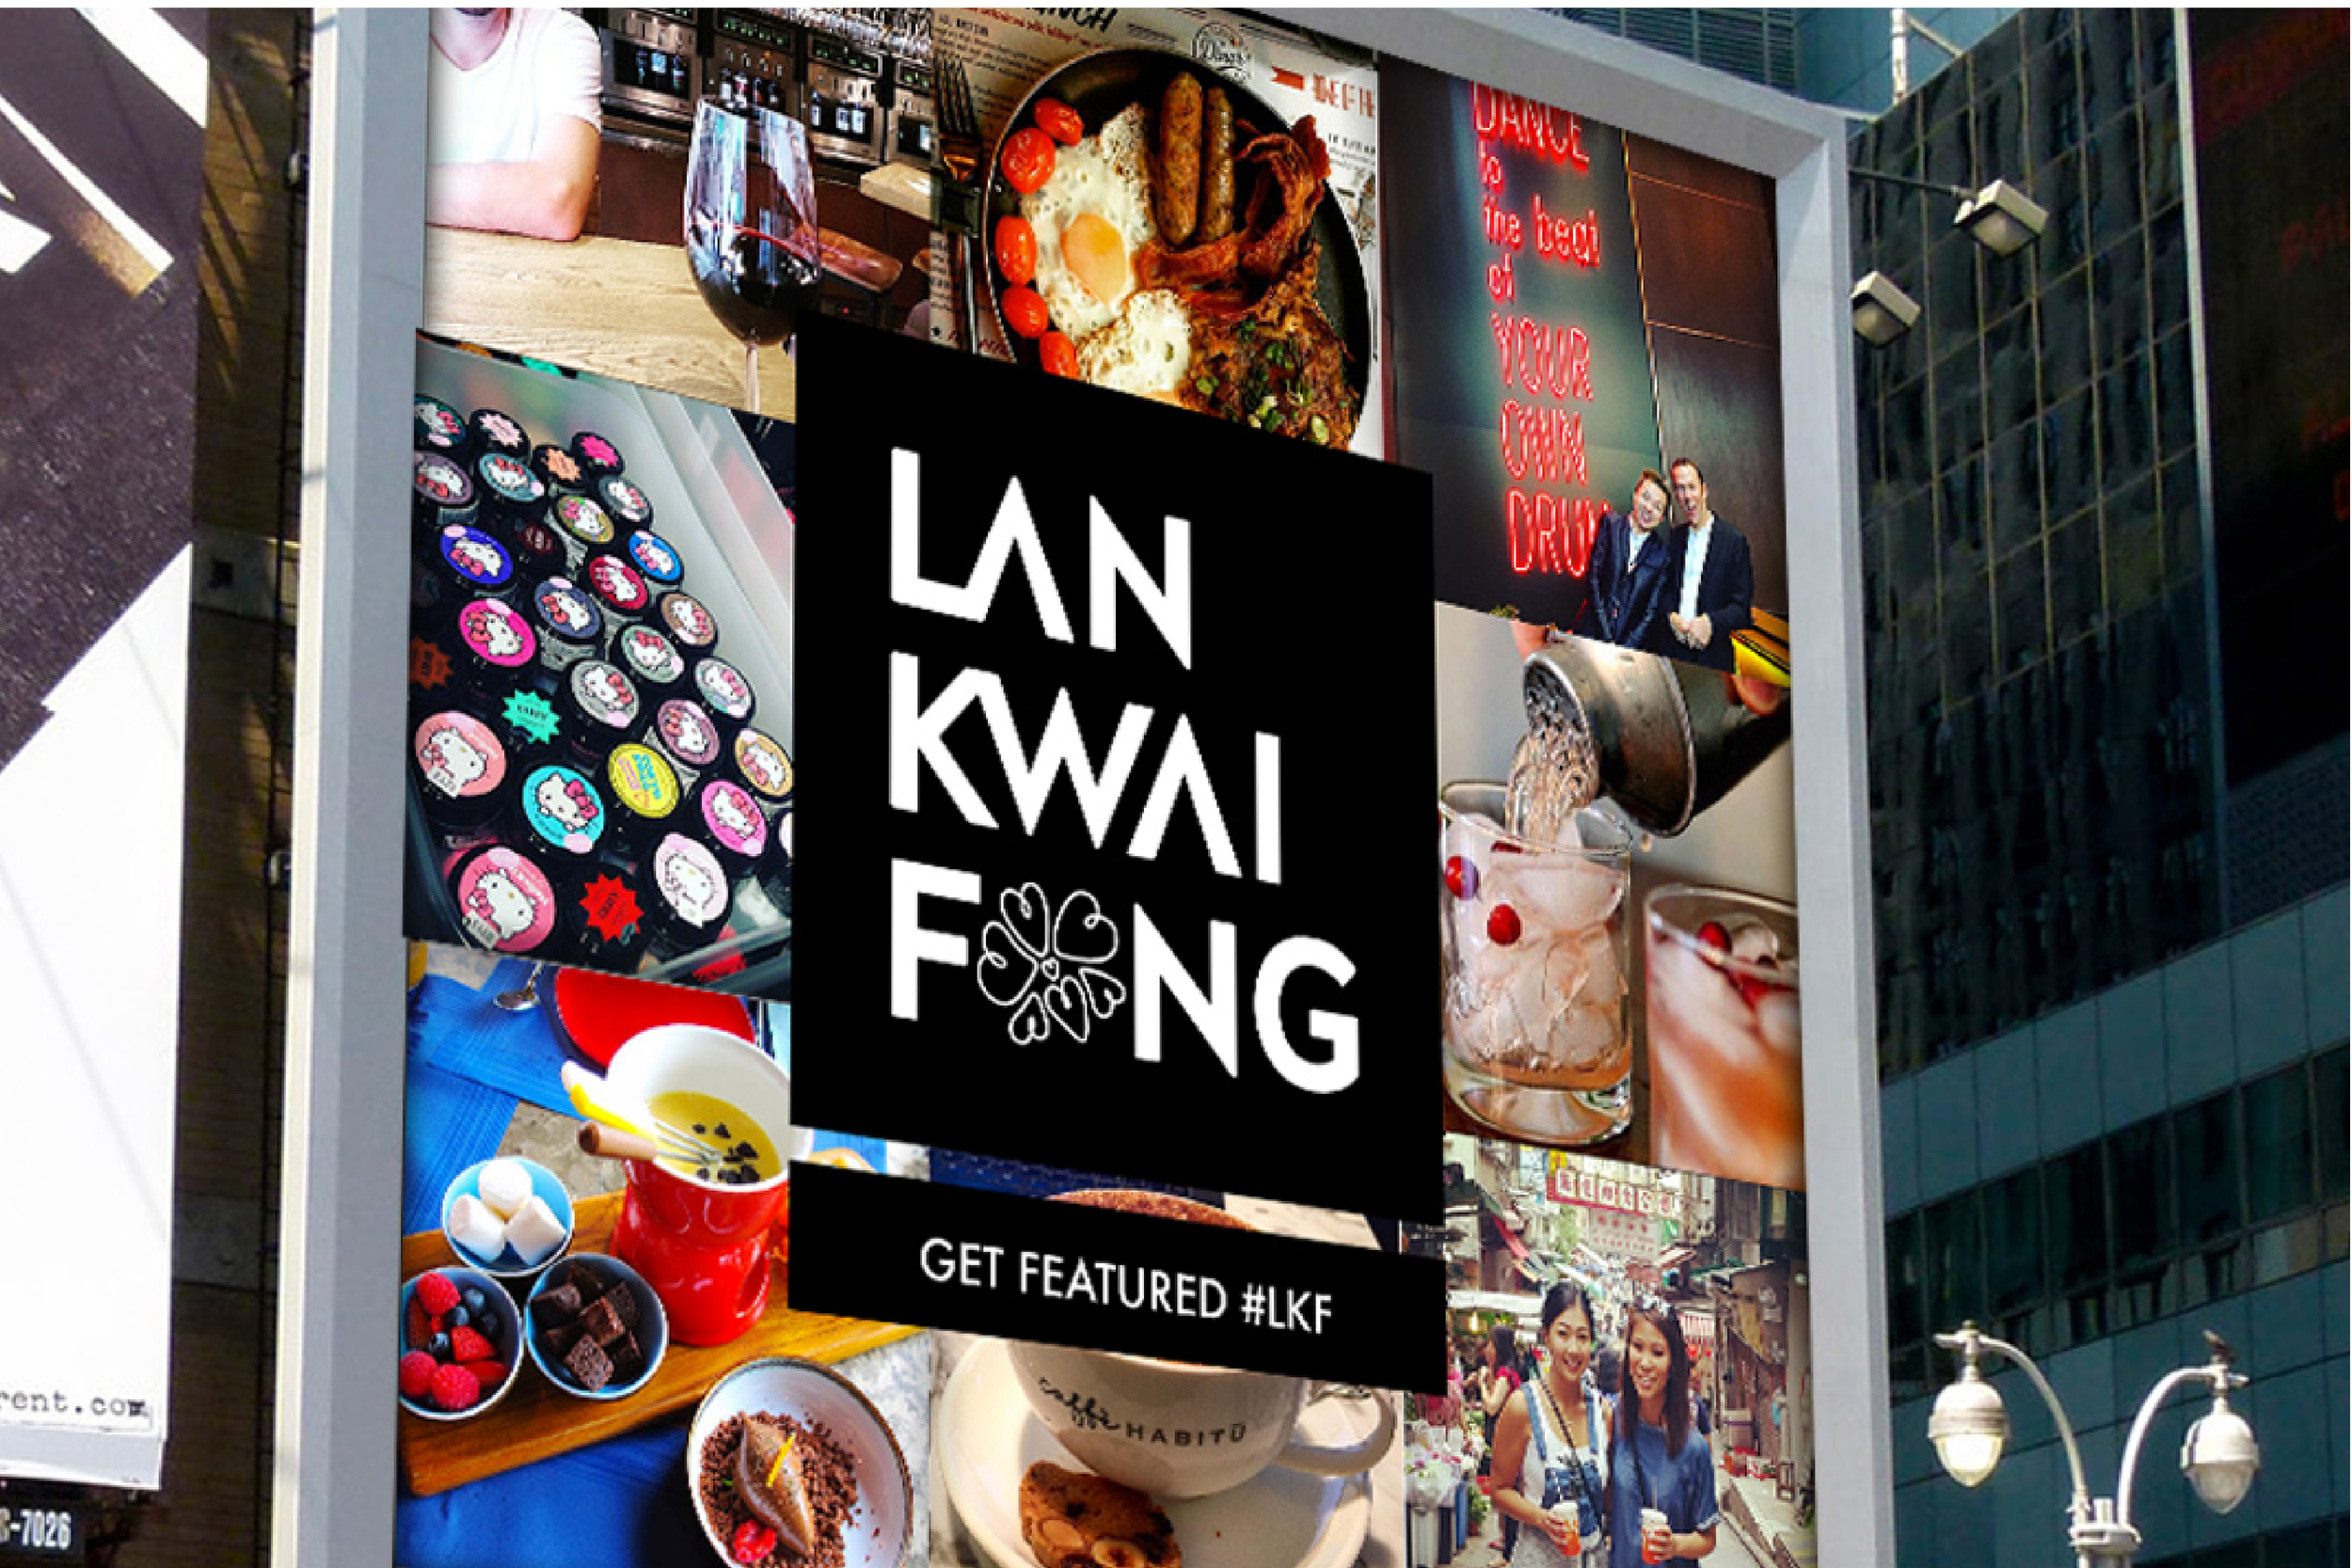 A life digital ad following the same format is located in the heart of LKF. This evolving ad will cycle photos sent in real time, as an attraction for tourists and consumers.